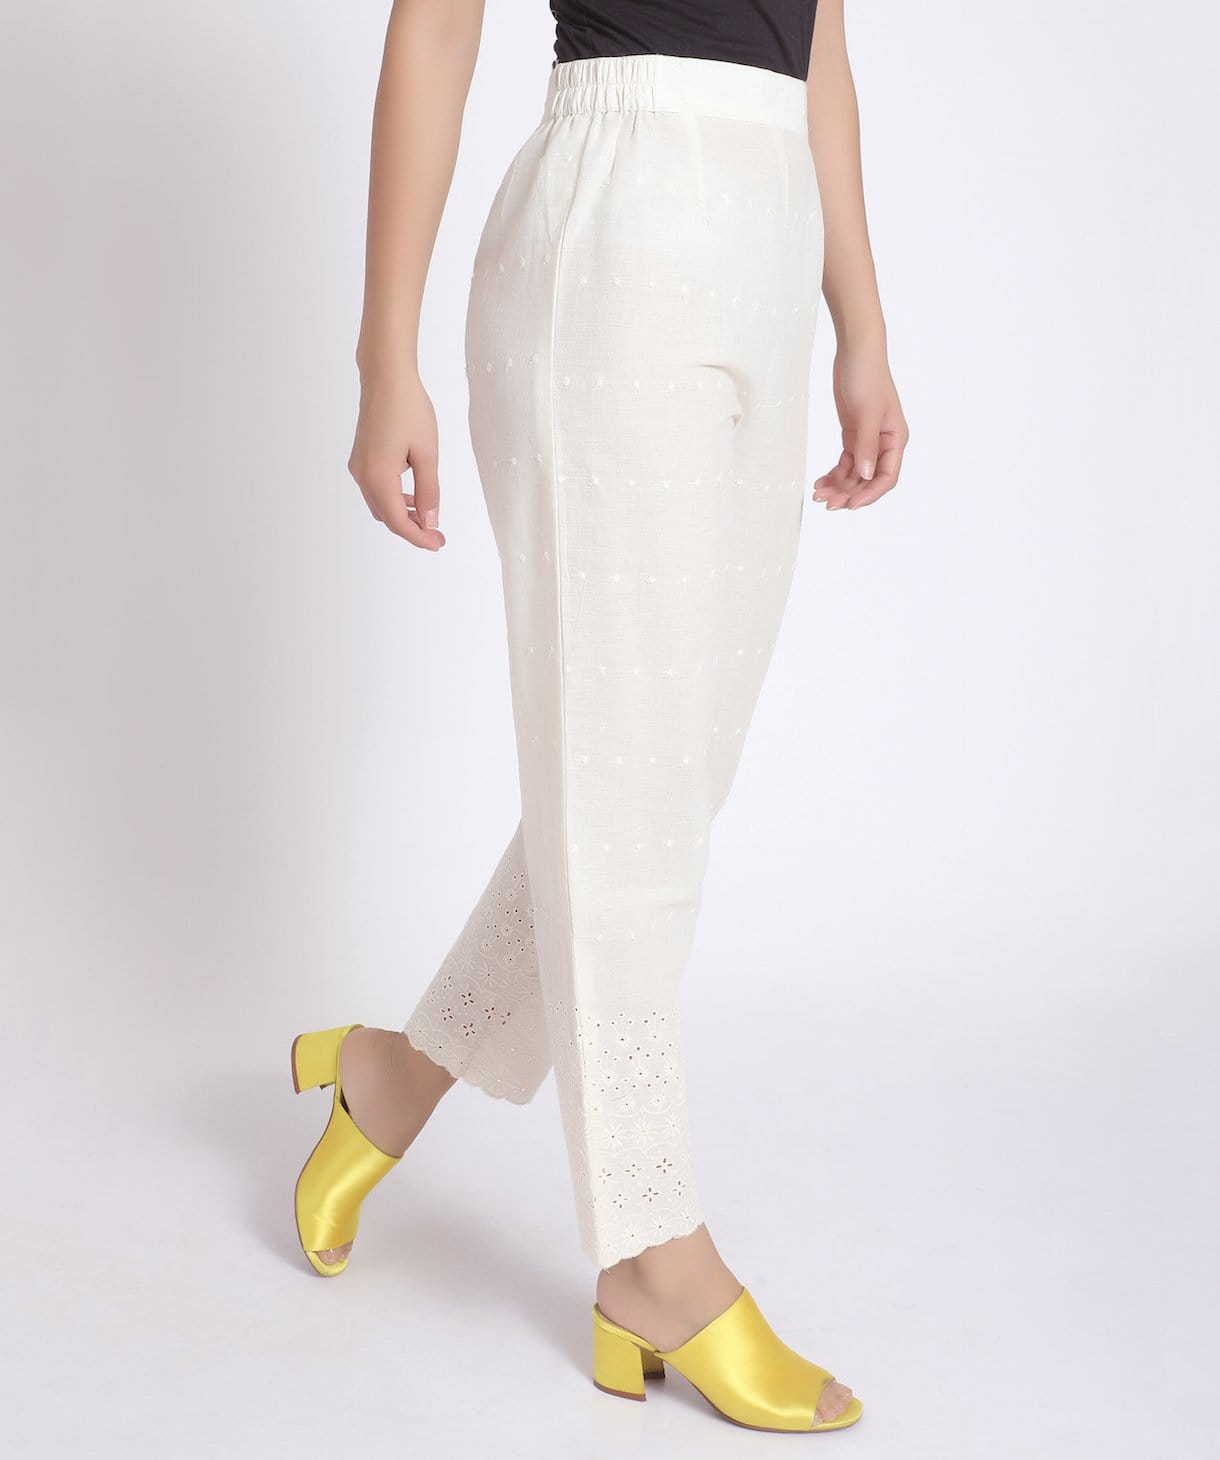 Solid White Chikon Pants/Palazzos